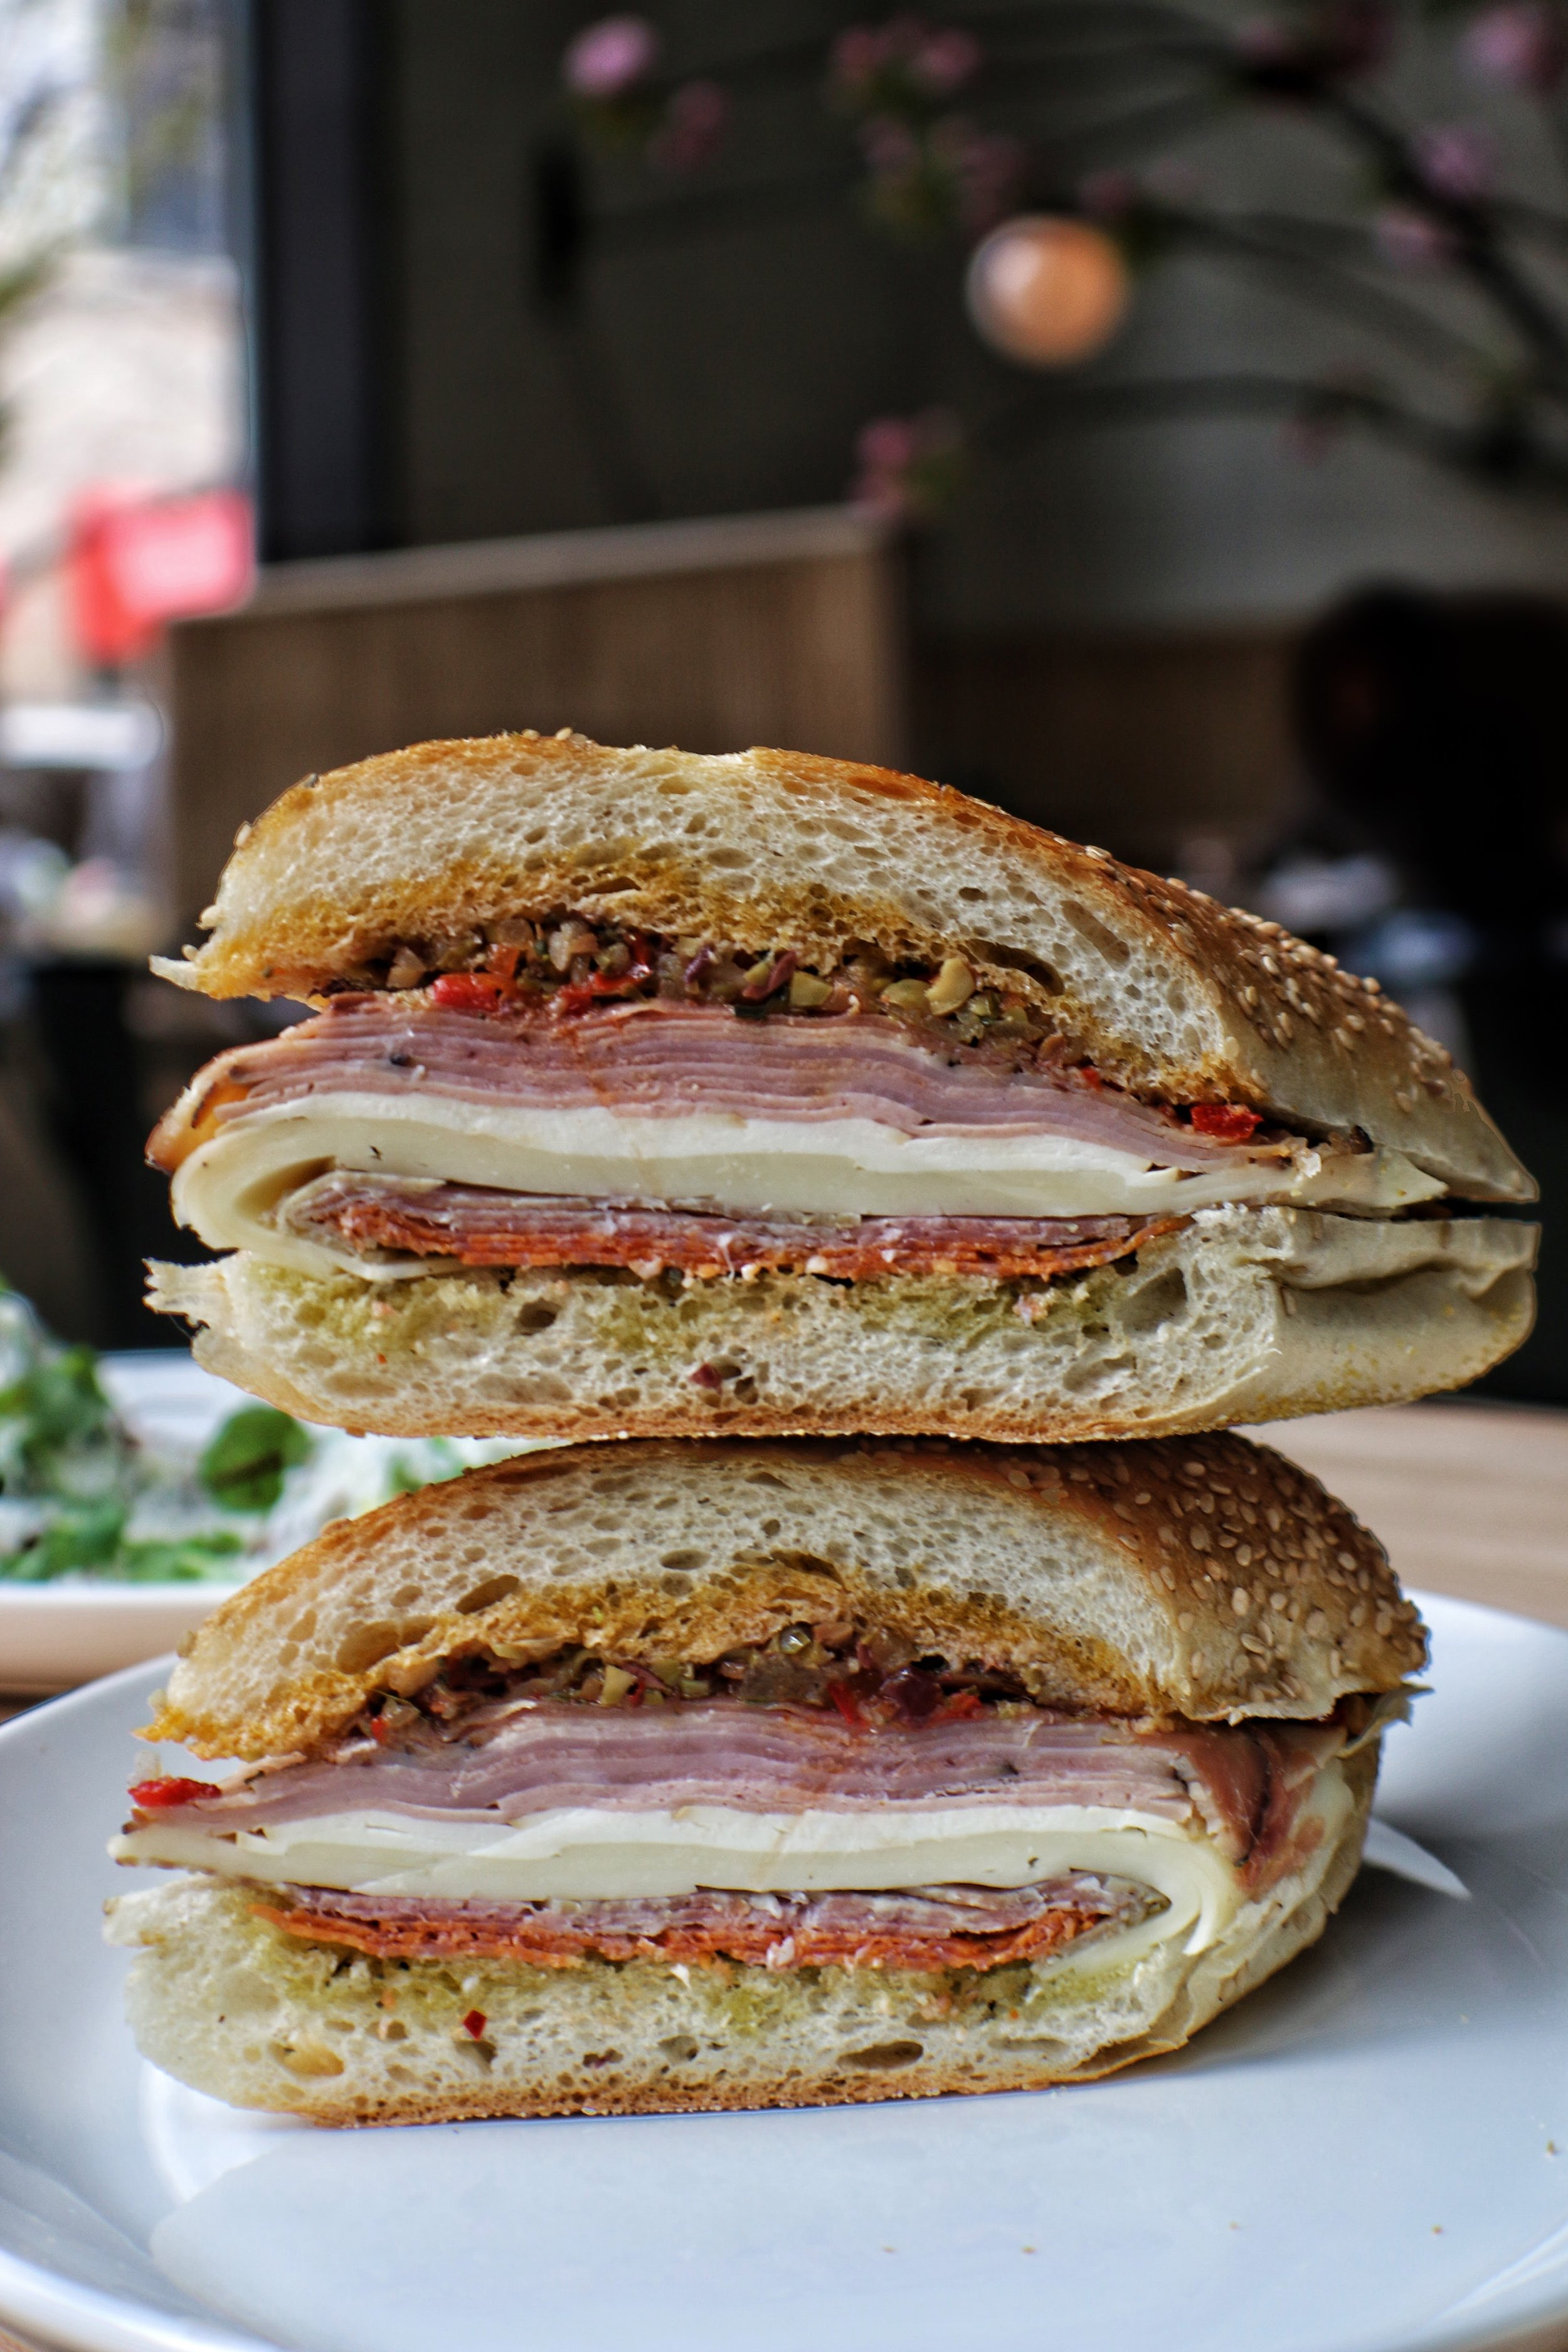 Matty's Muffaletta with Country Ham, Olive Salad & Smoked Di Palo's Mozzarella on a Sesame Hero